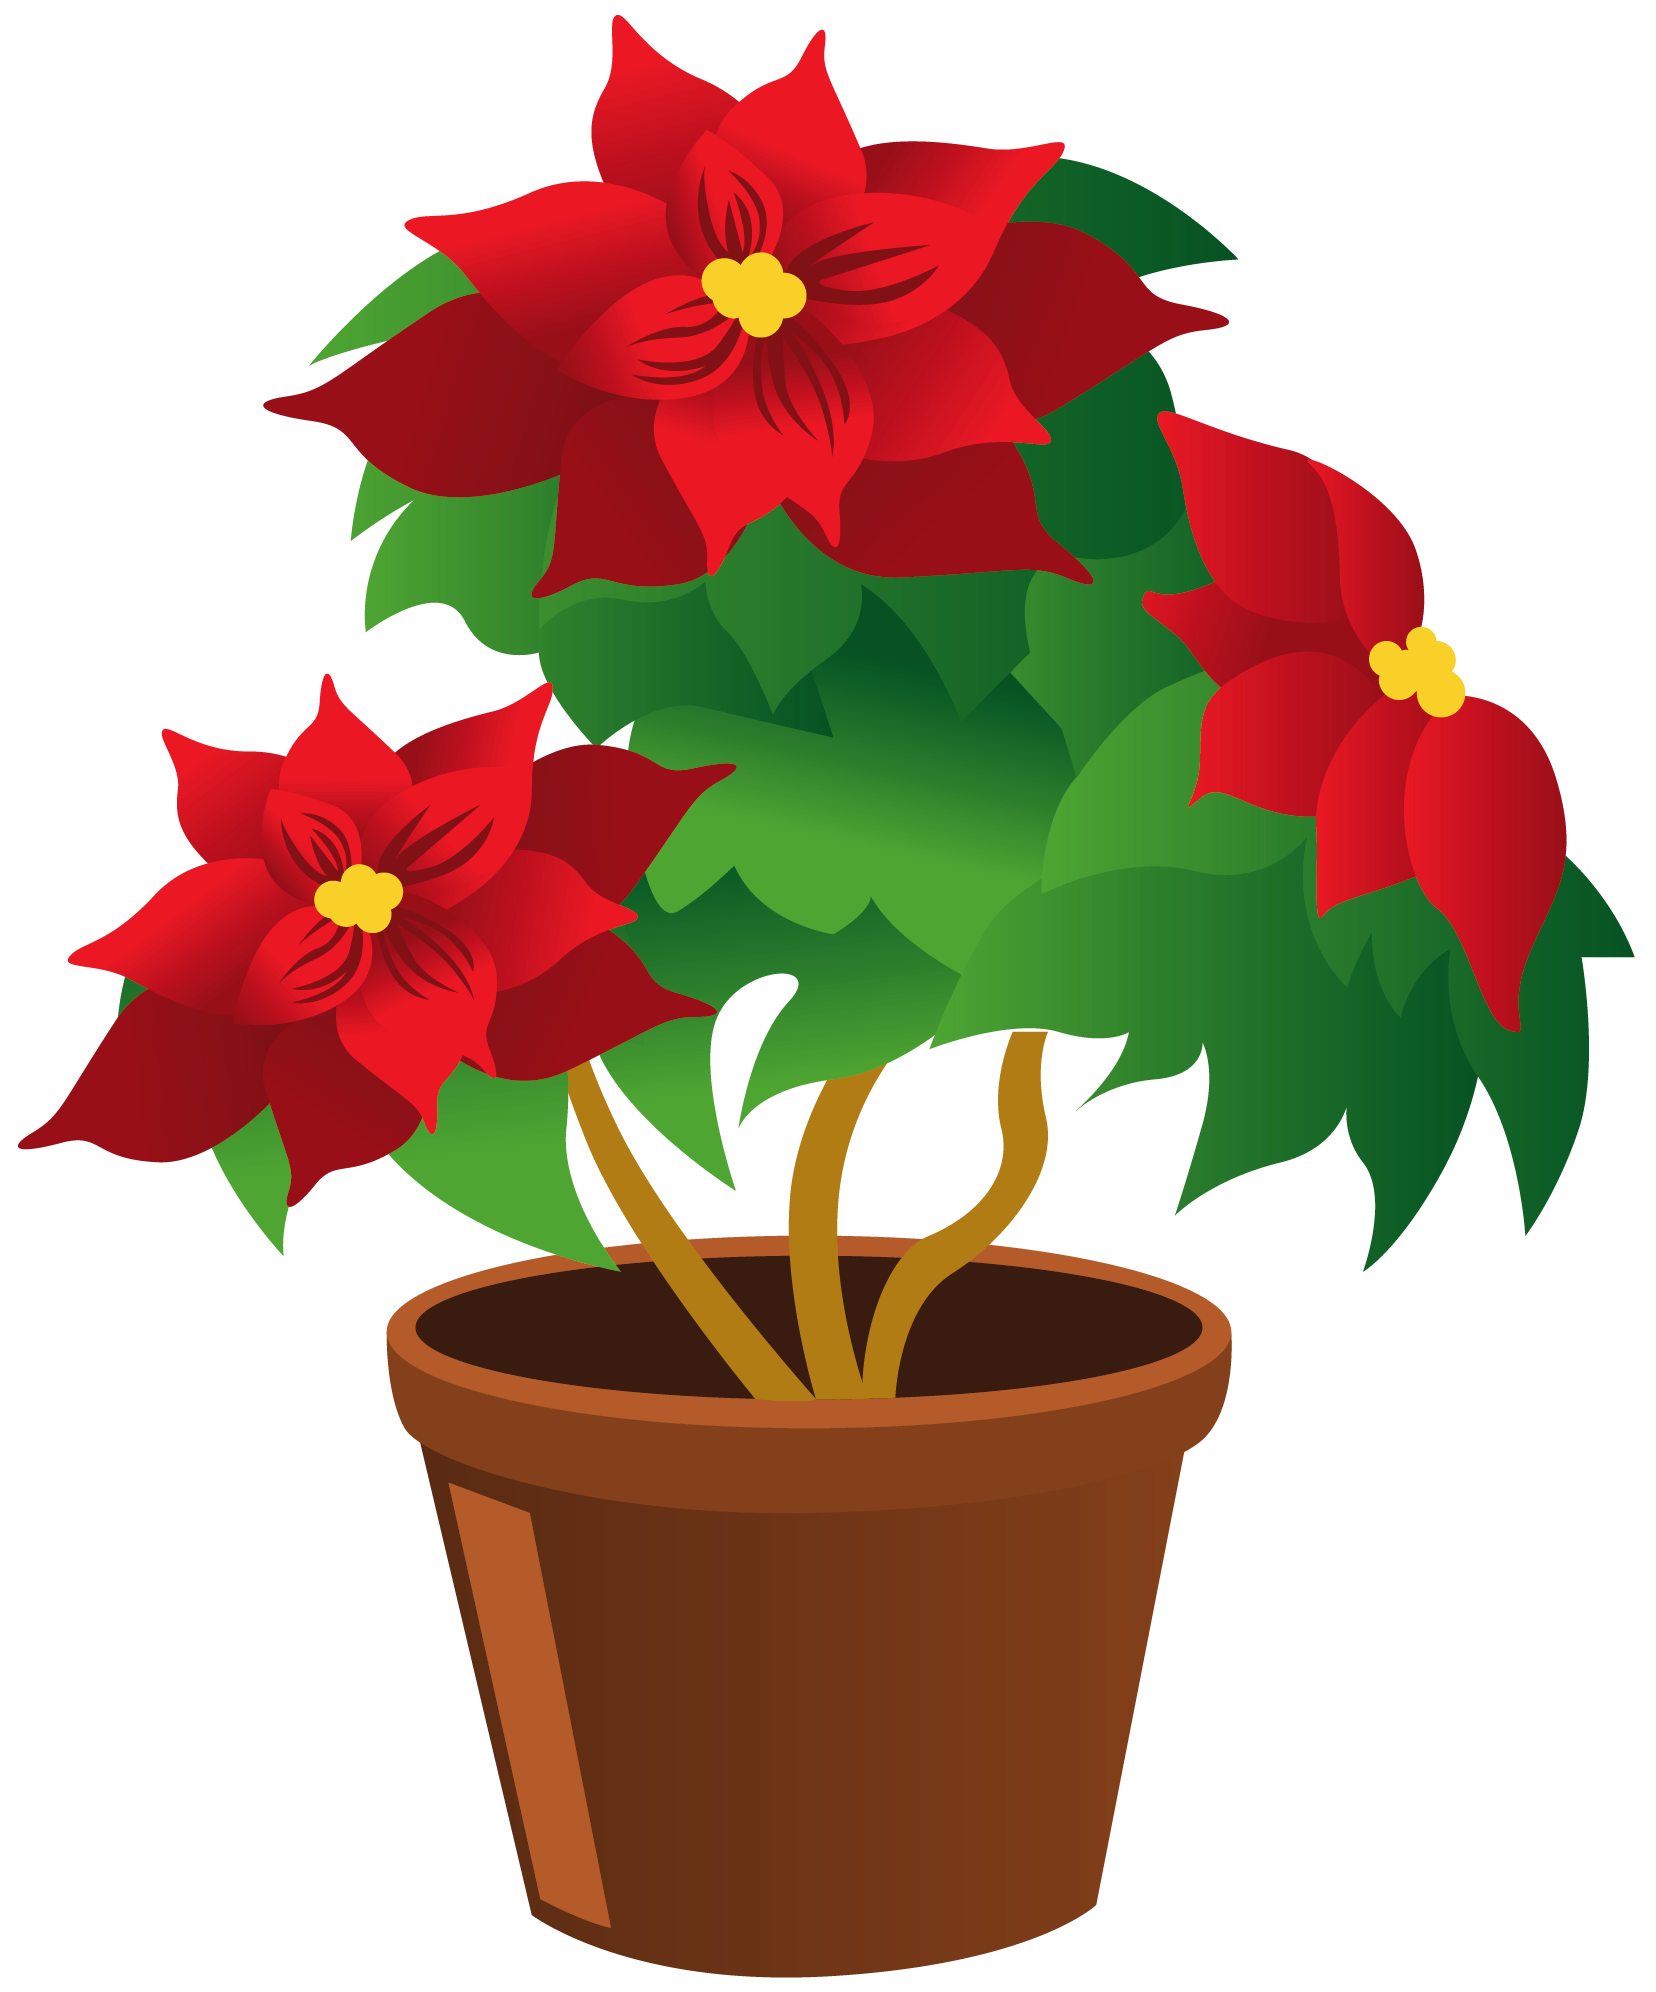 Flower pot clipart png. Poinsettia my garden valley